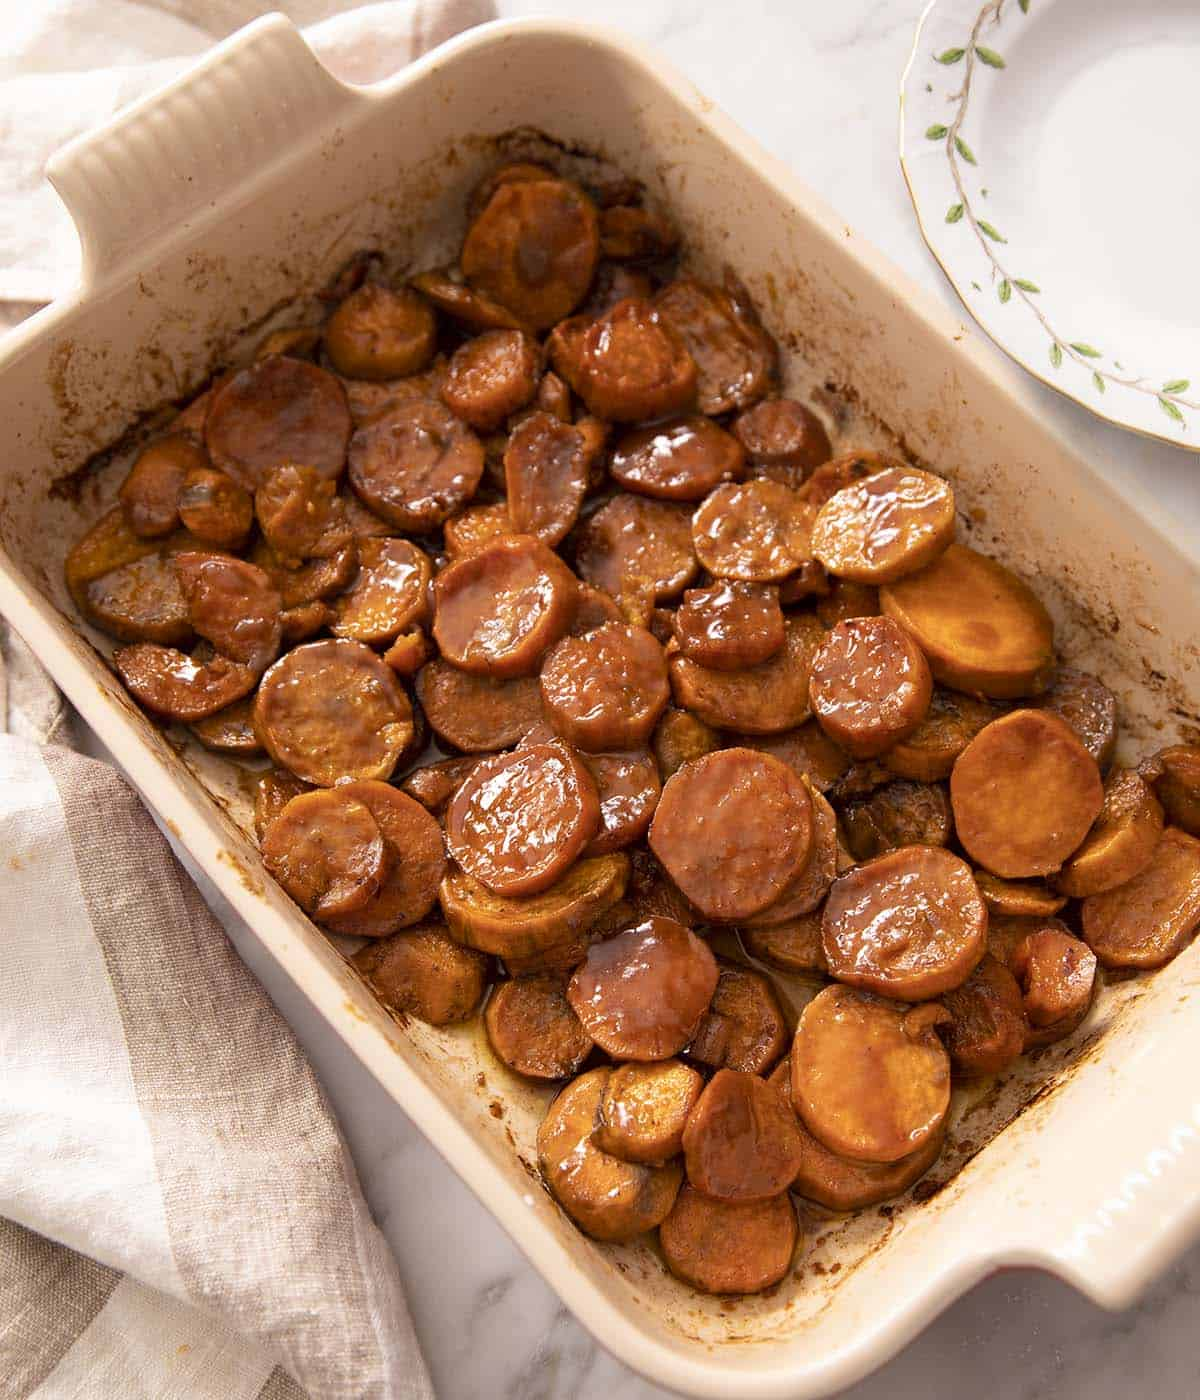 A baking dish filled with candied yams.